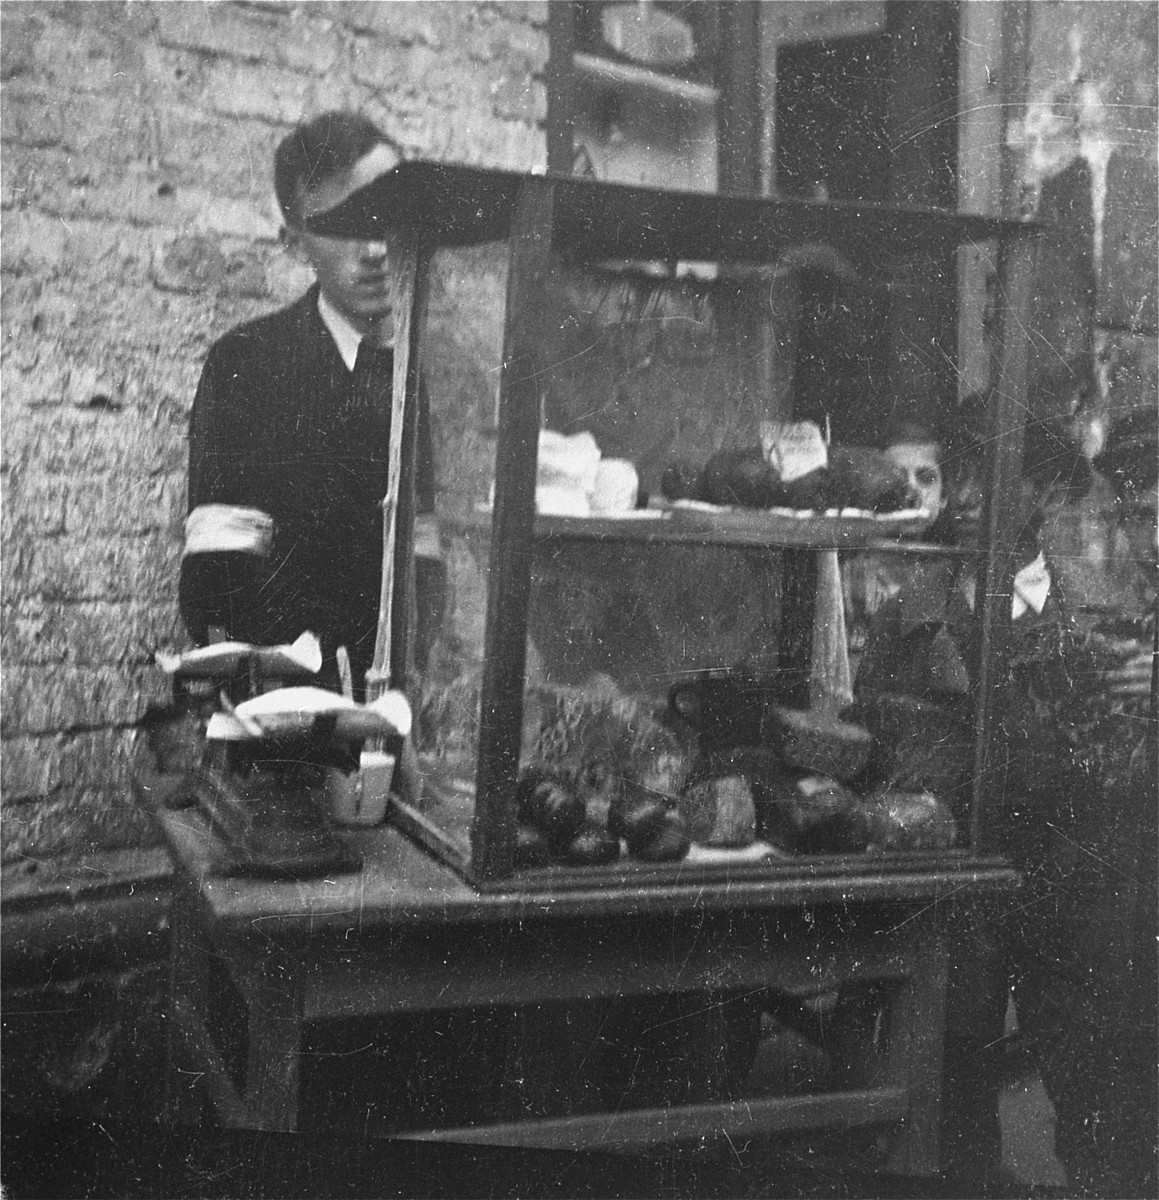 """A vendor on the street in the Warsaw ghetto offers bread and cheese for sale.   Joest's original caption reads: """"This man sold bread and cheese on the street.  Children surrounded his glass case, but could not buy anything."""""""